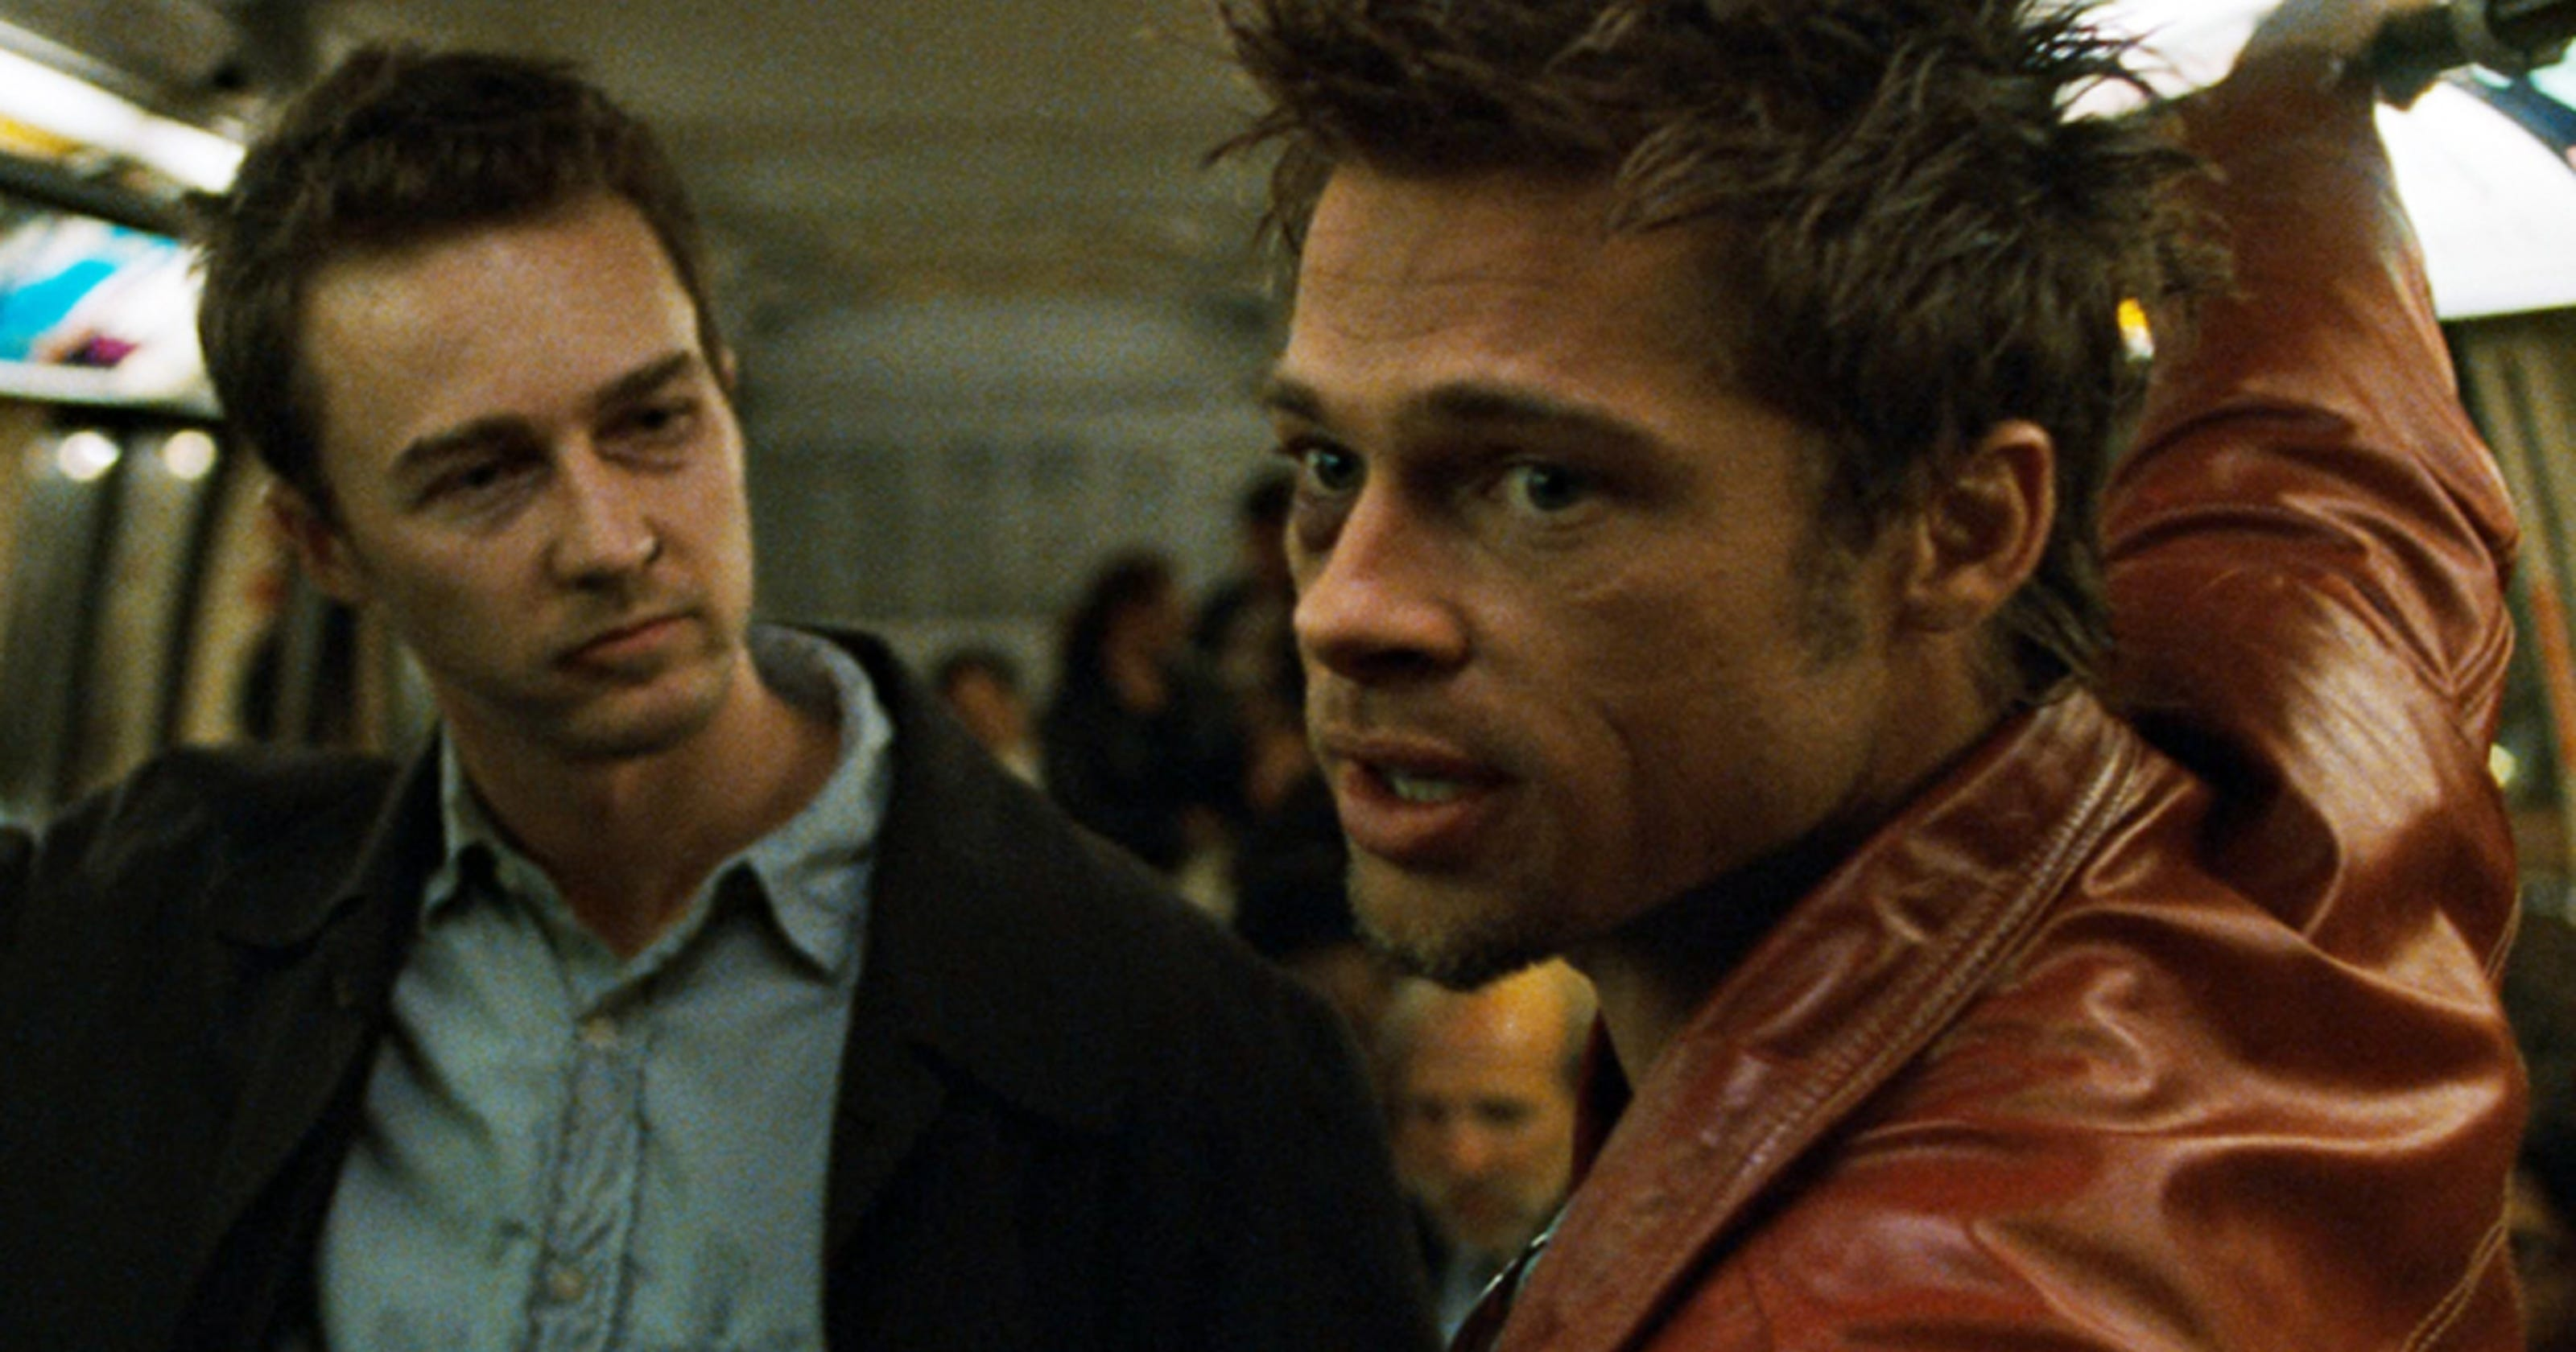 fight club and its numerous delaware references is